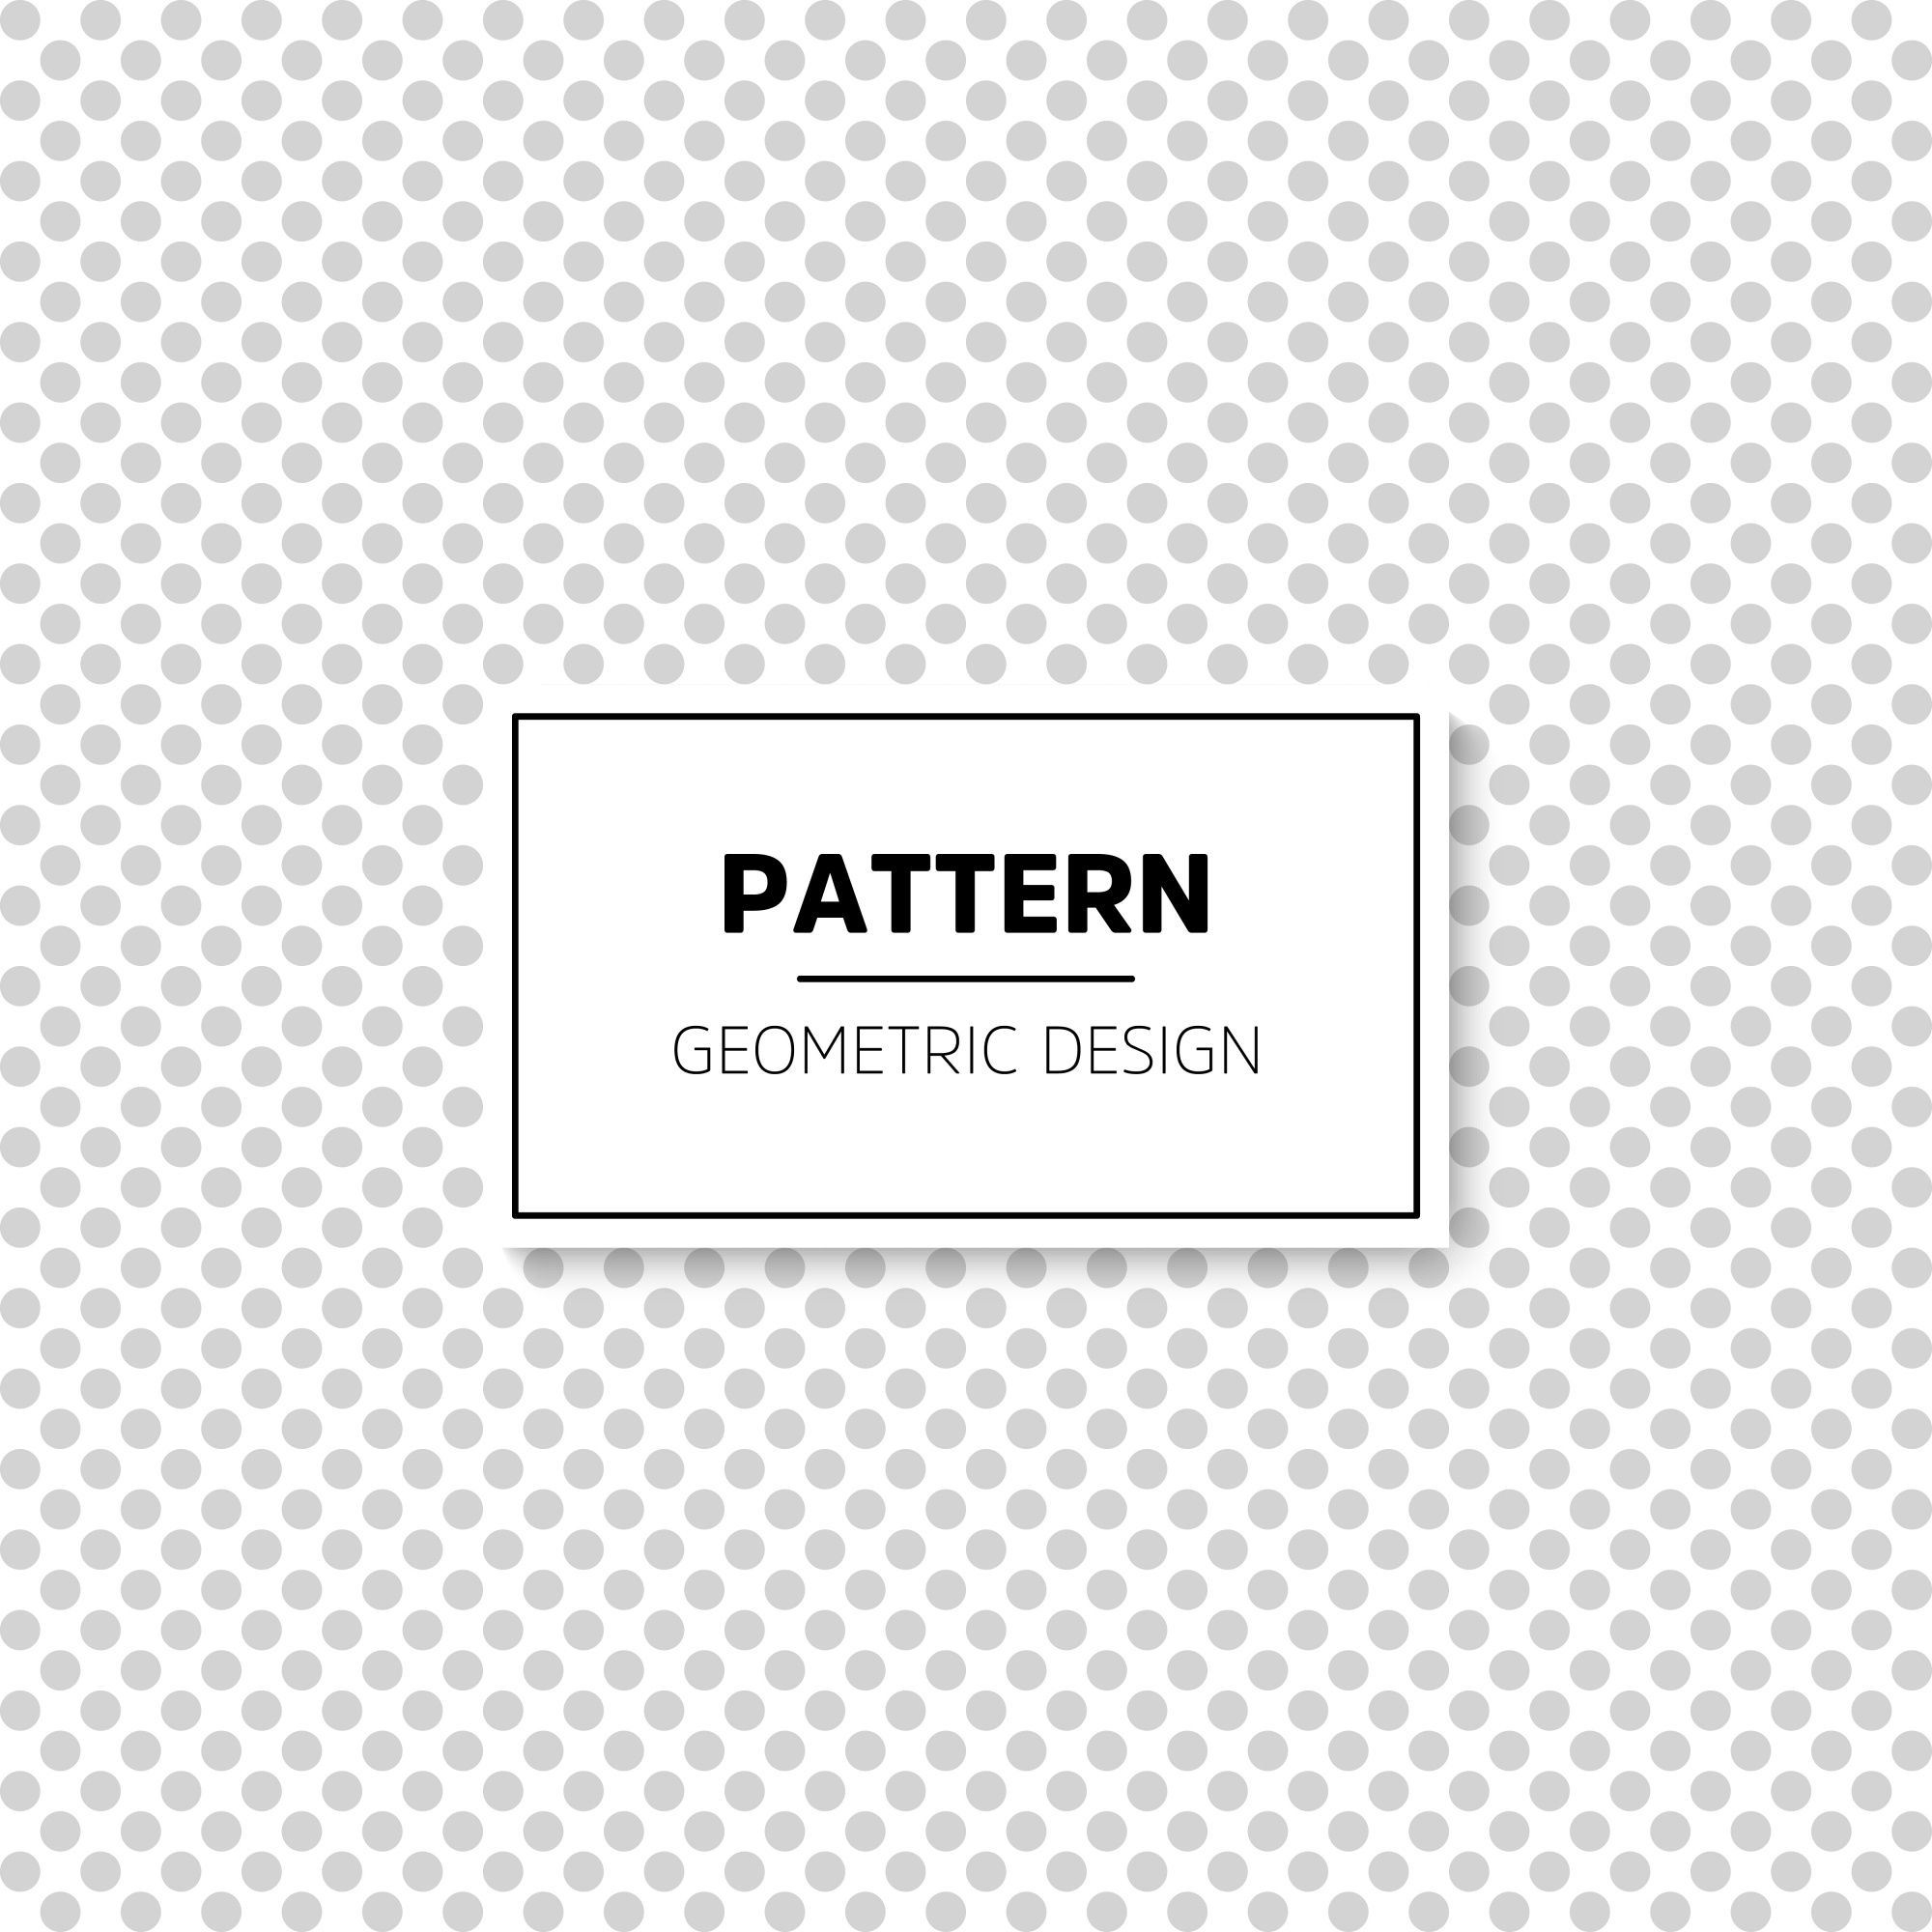 Simple grey dots pattern